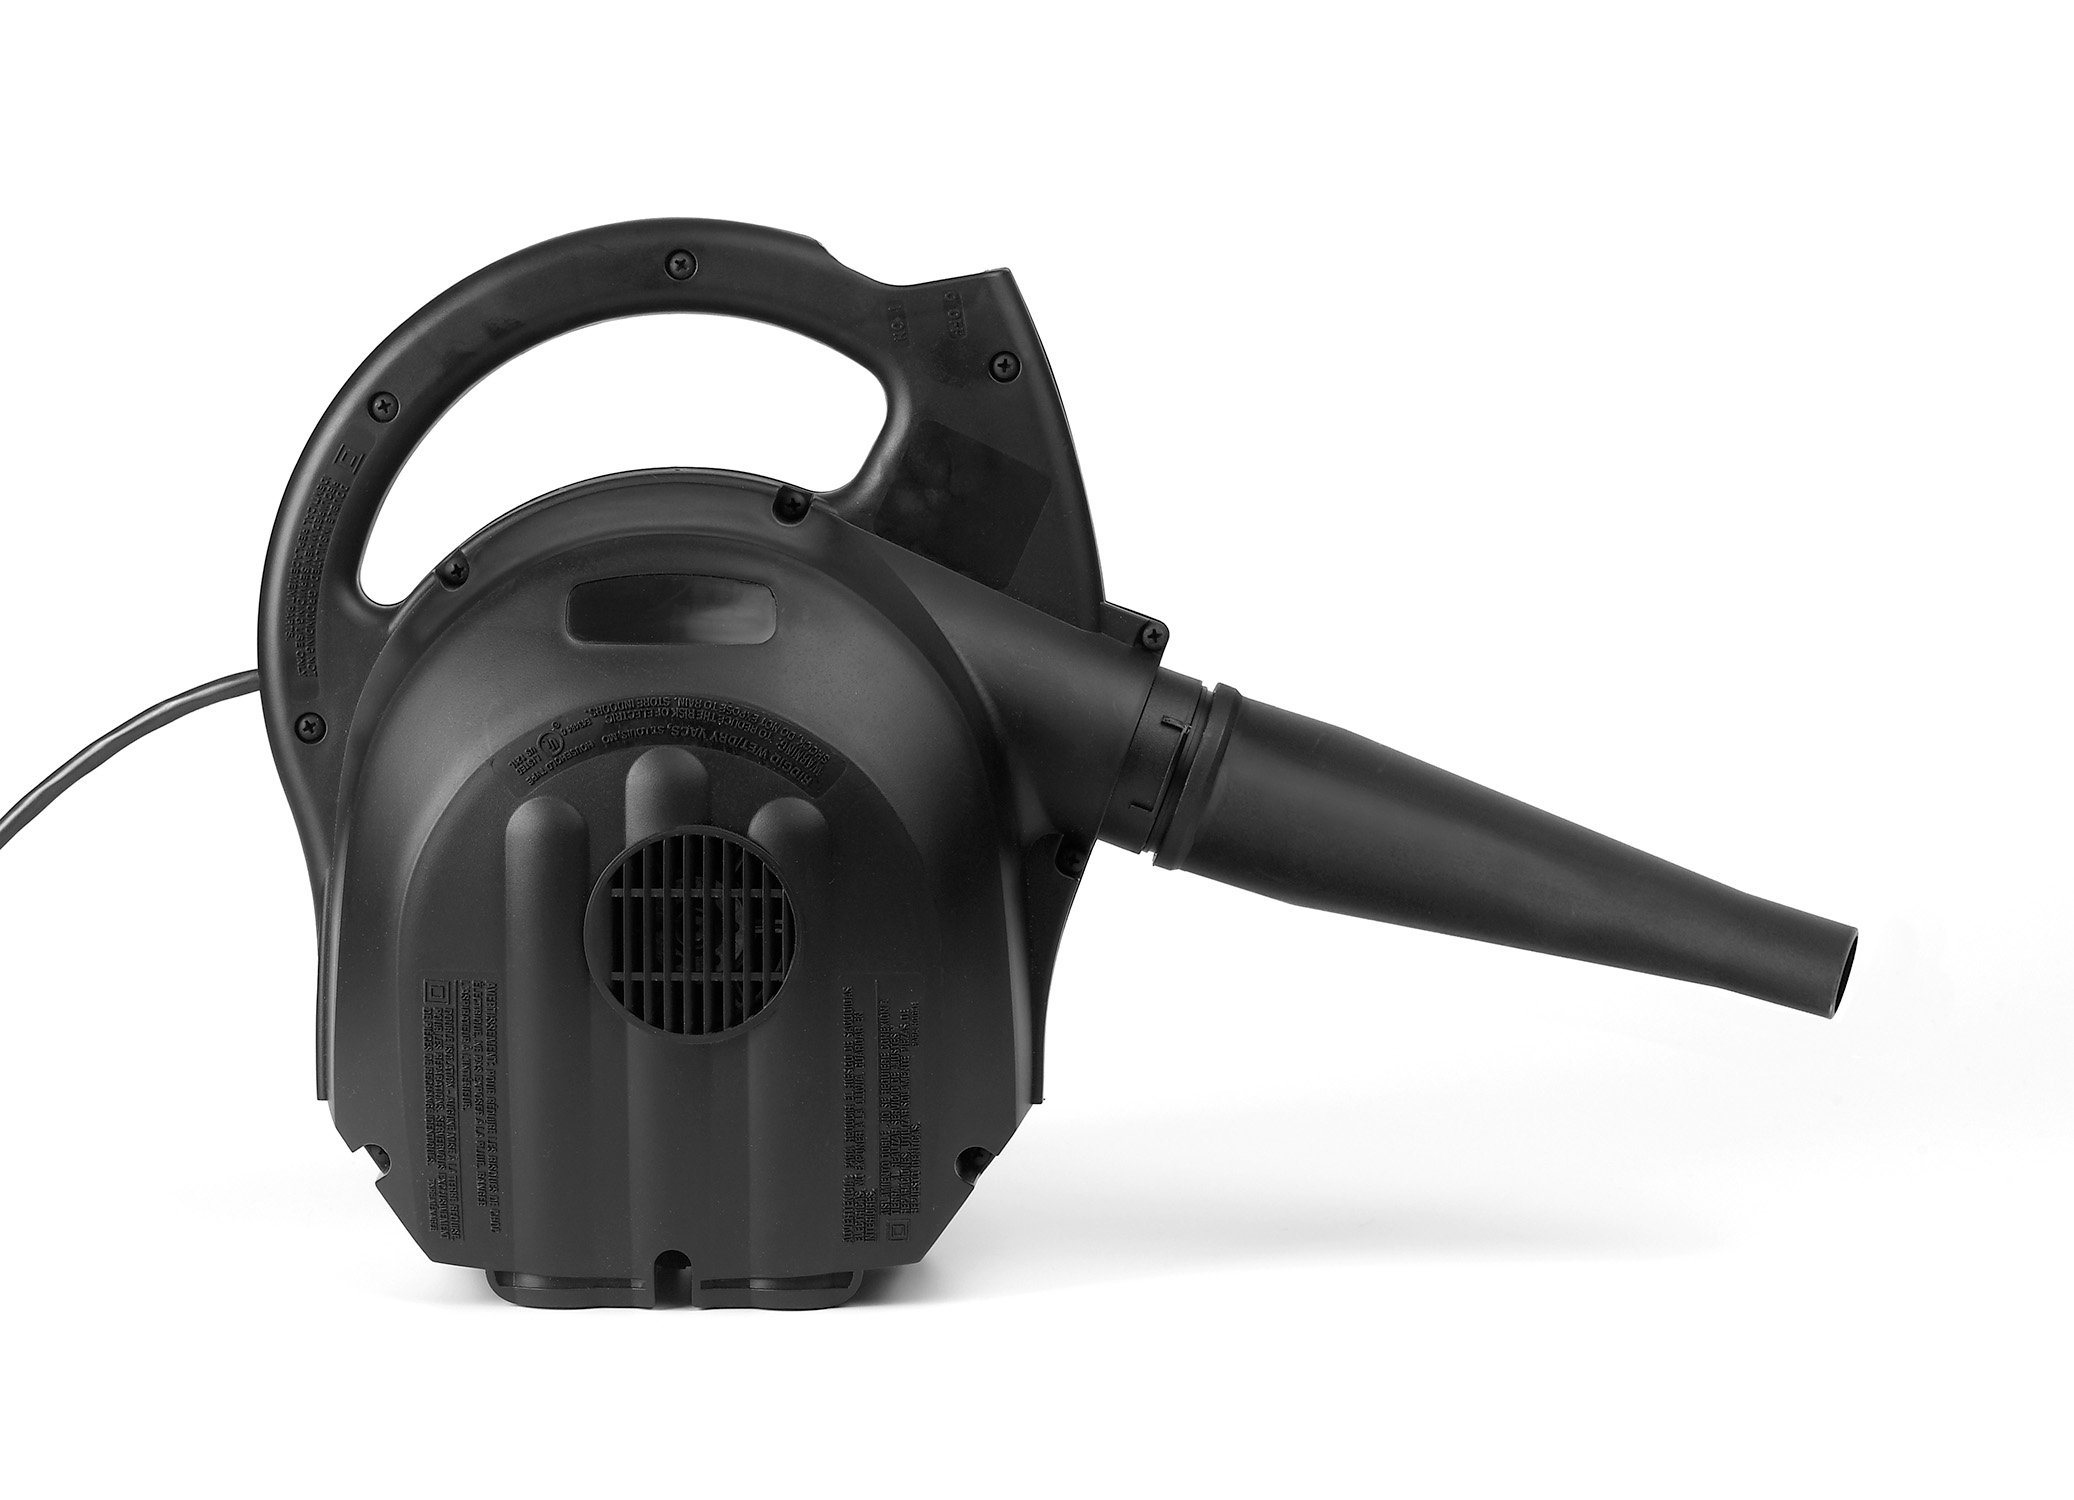 Workshop Wet Dry Blower Vac WS1200DE Heavy Duty Leaf 12 Gallon Wet Dry Vacuum Cleaner And Leaf Blower, 5.0 Hip by WORKSHOP Wet/Dry Vacs (Image #6)